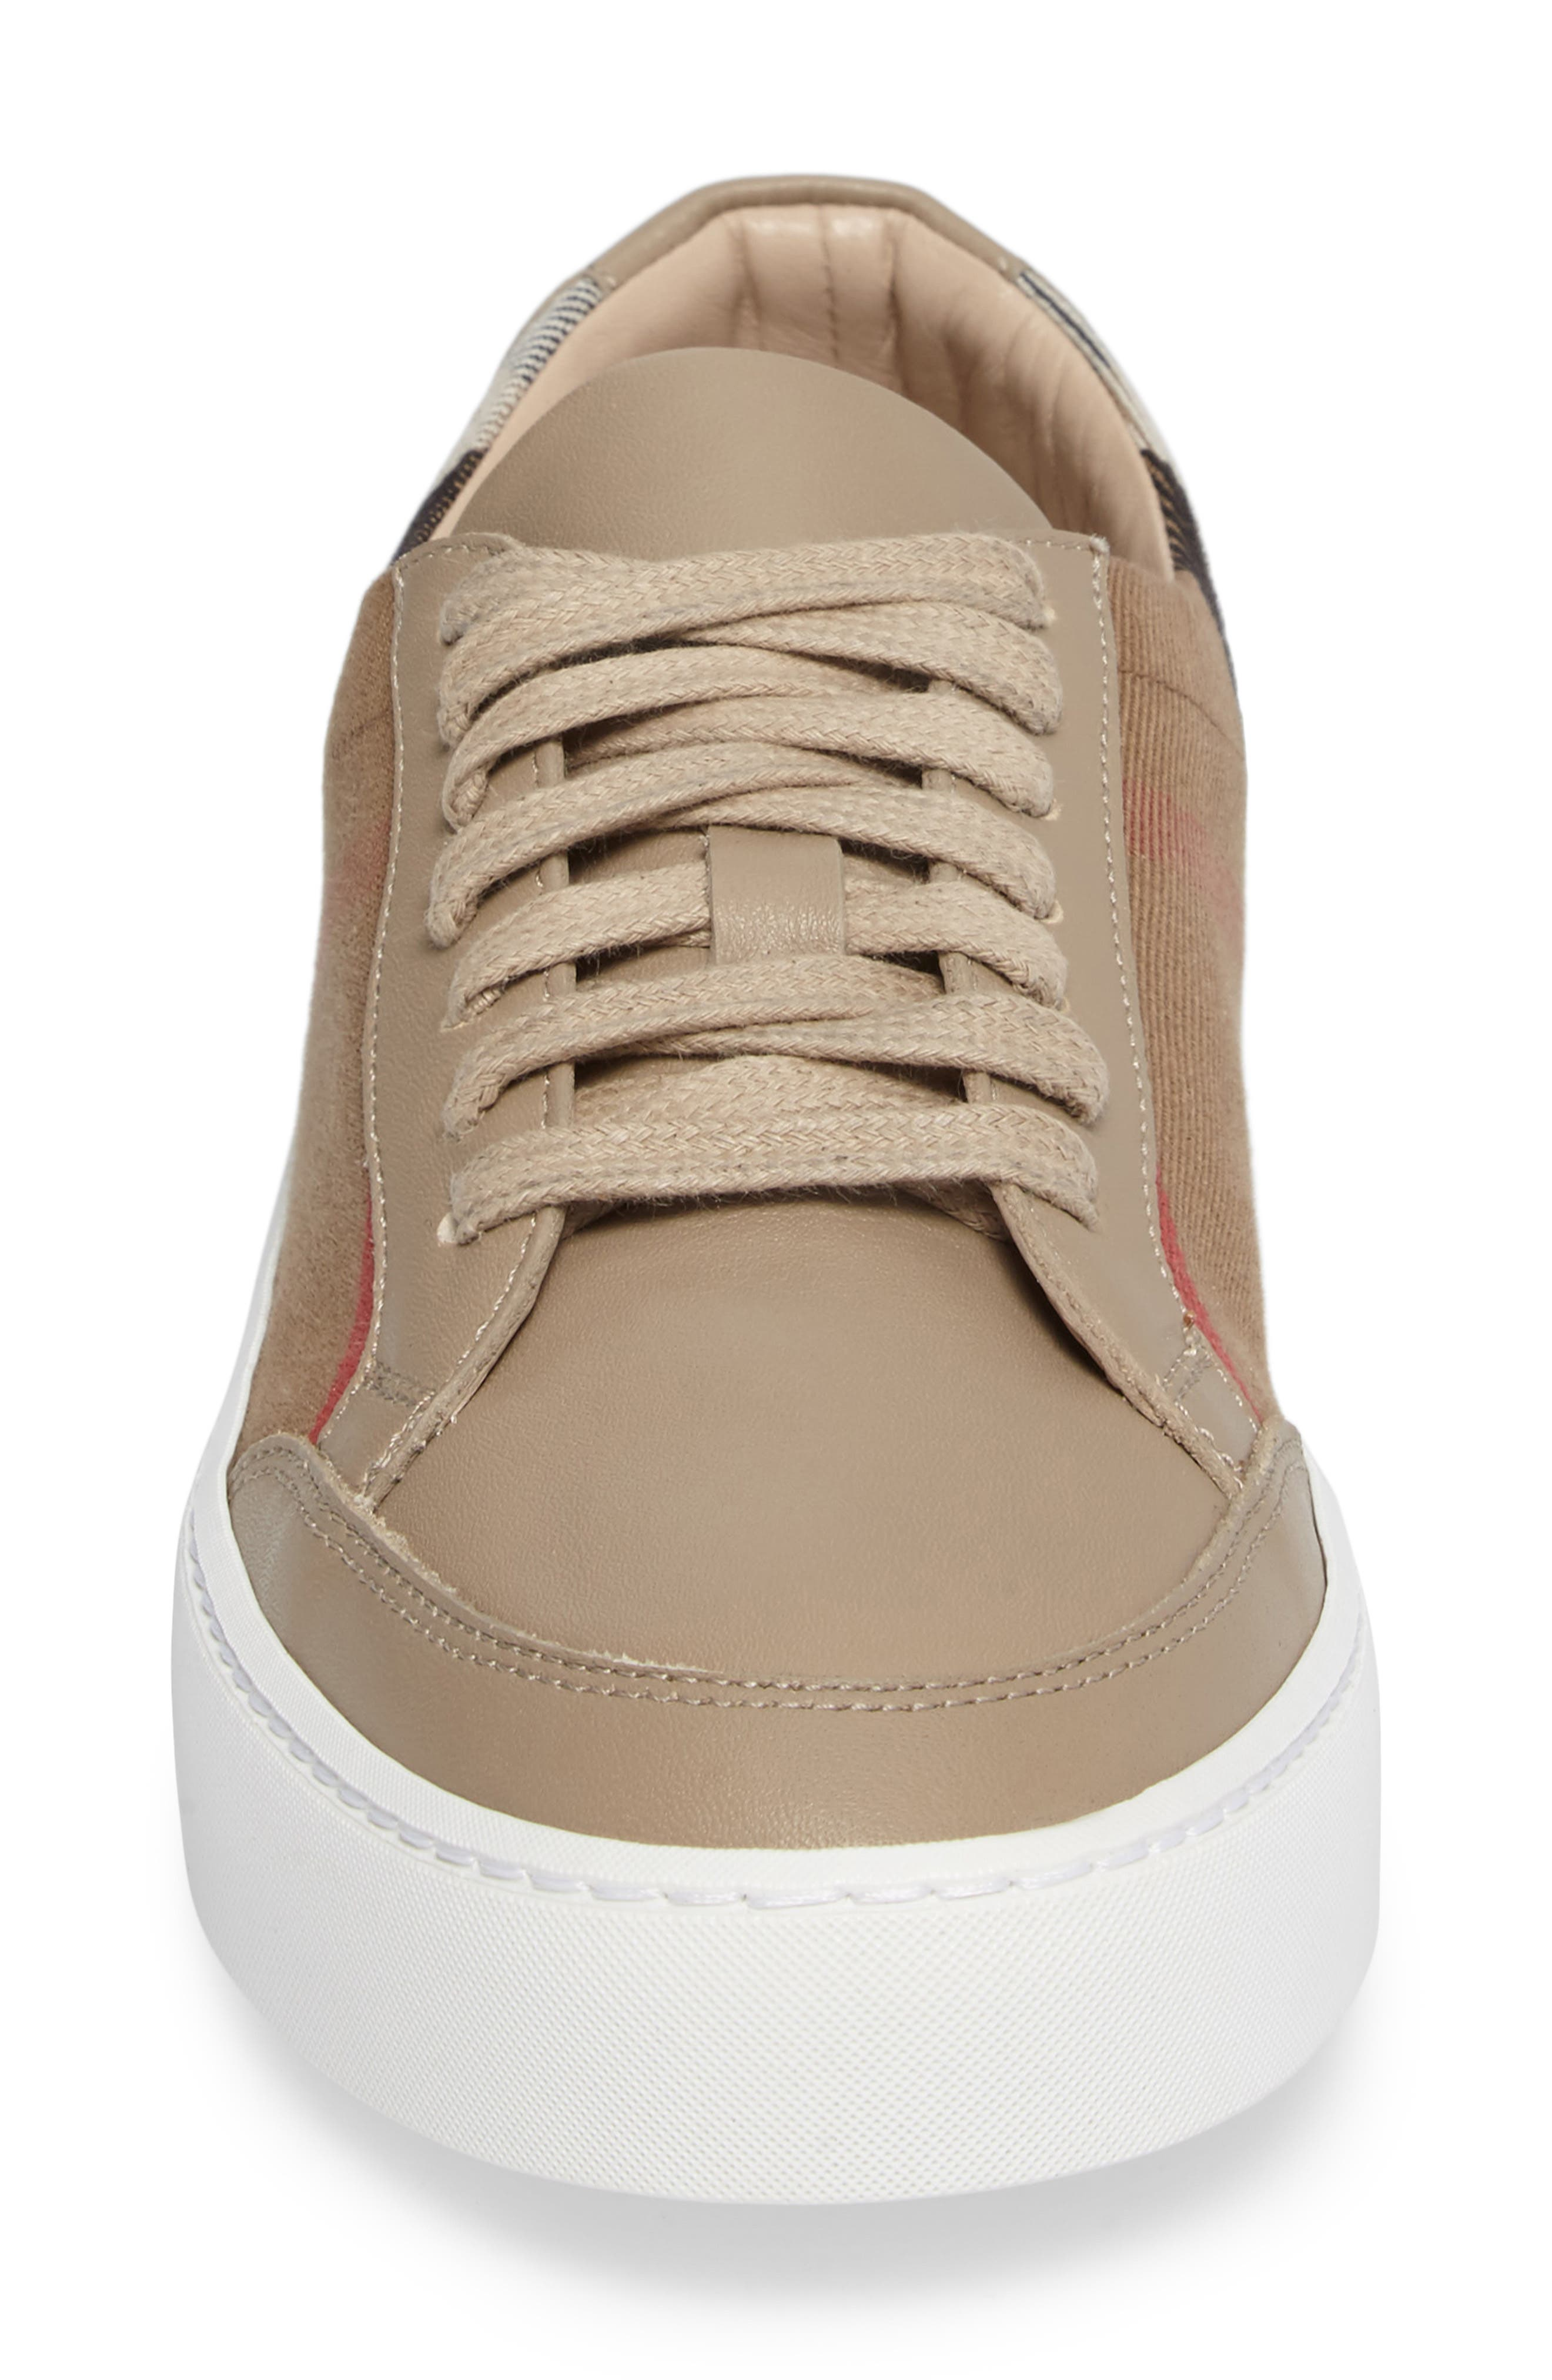 Salmond Sneaker,                             Alternate thumbnail 4, color,                             Nude